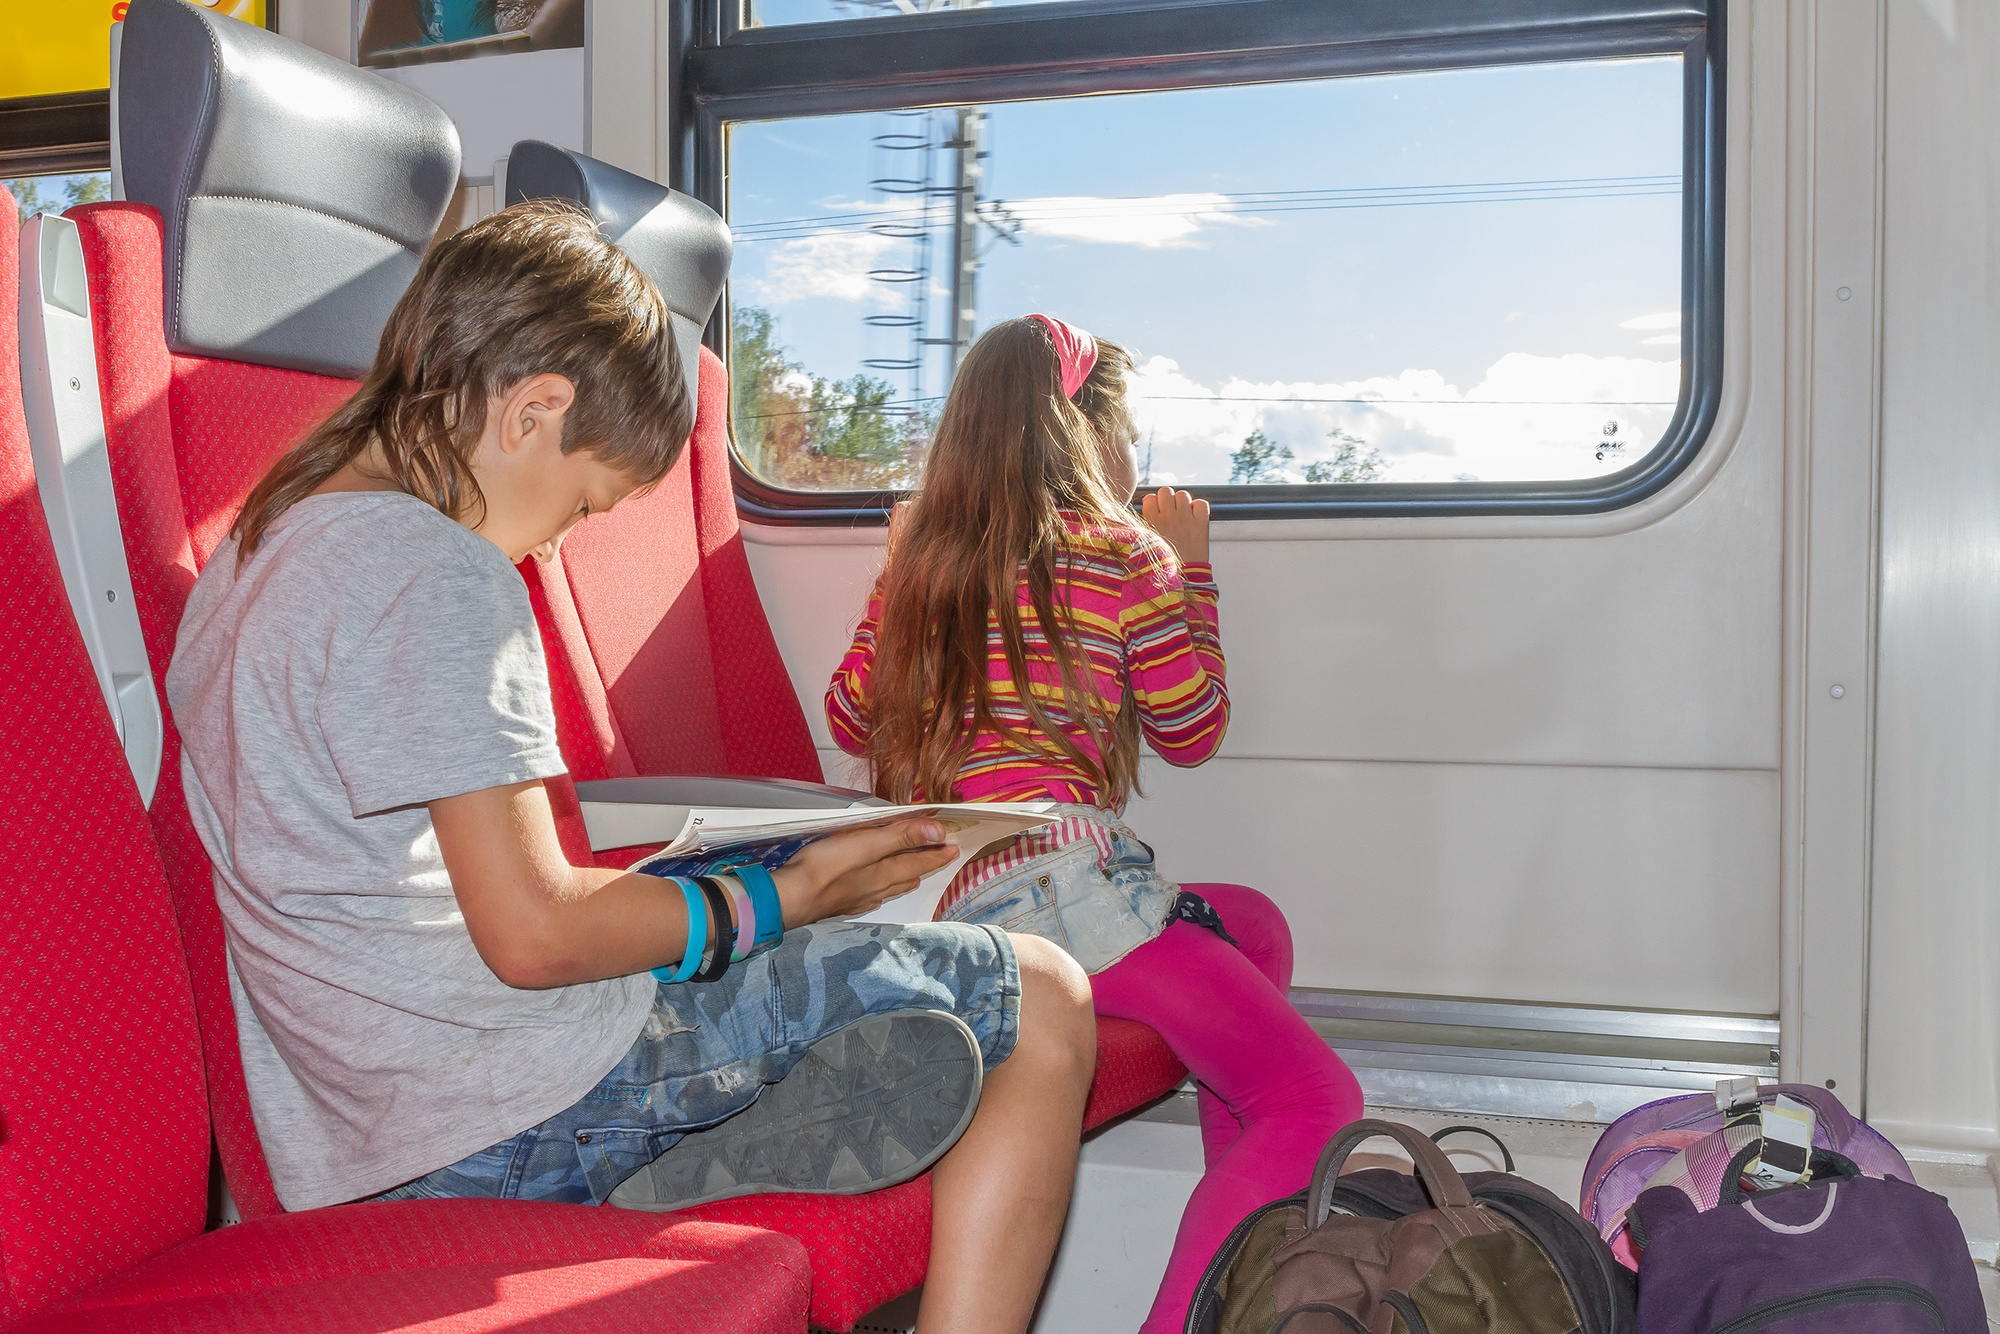 Train travel makes a good choice for solo parent trips